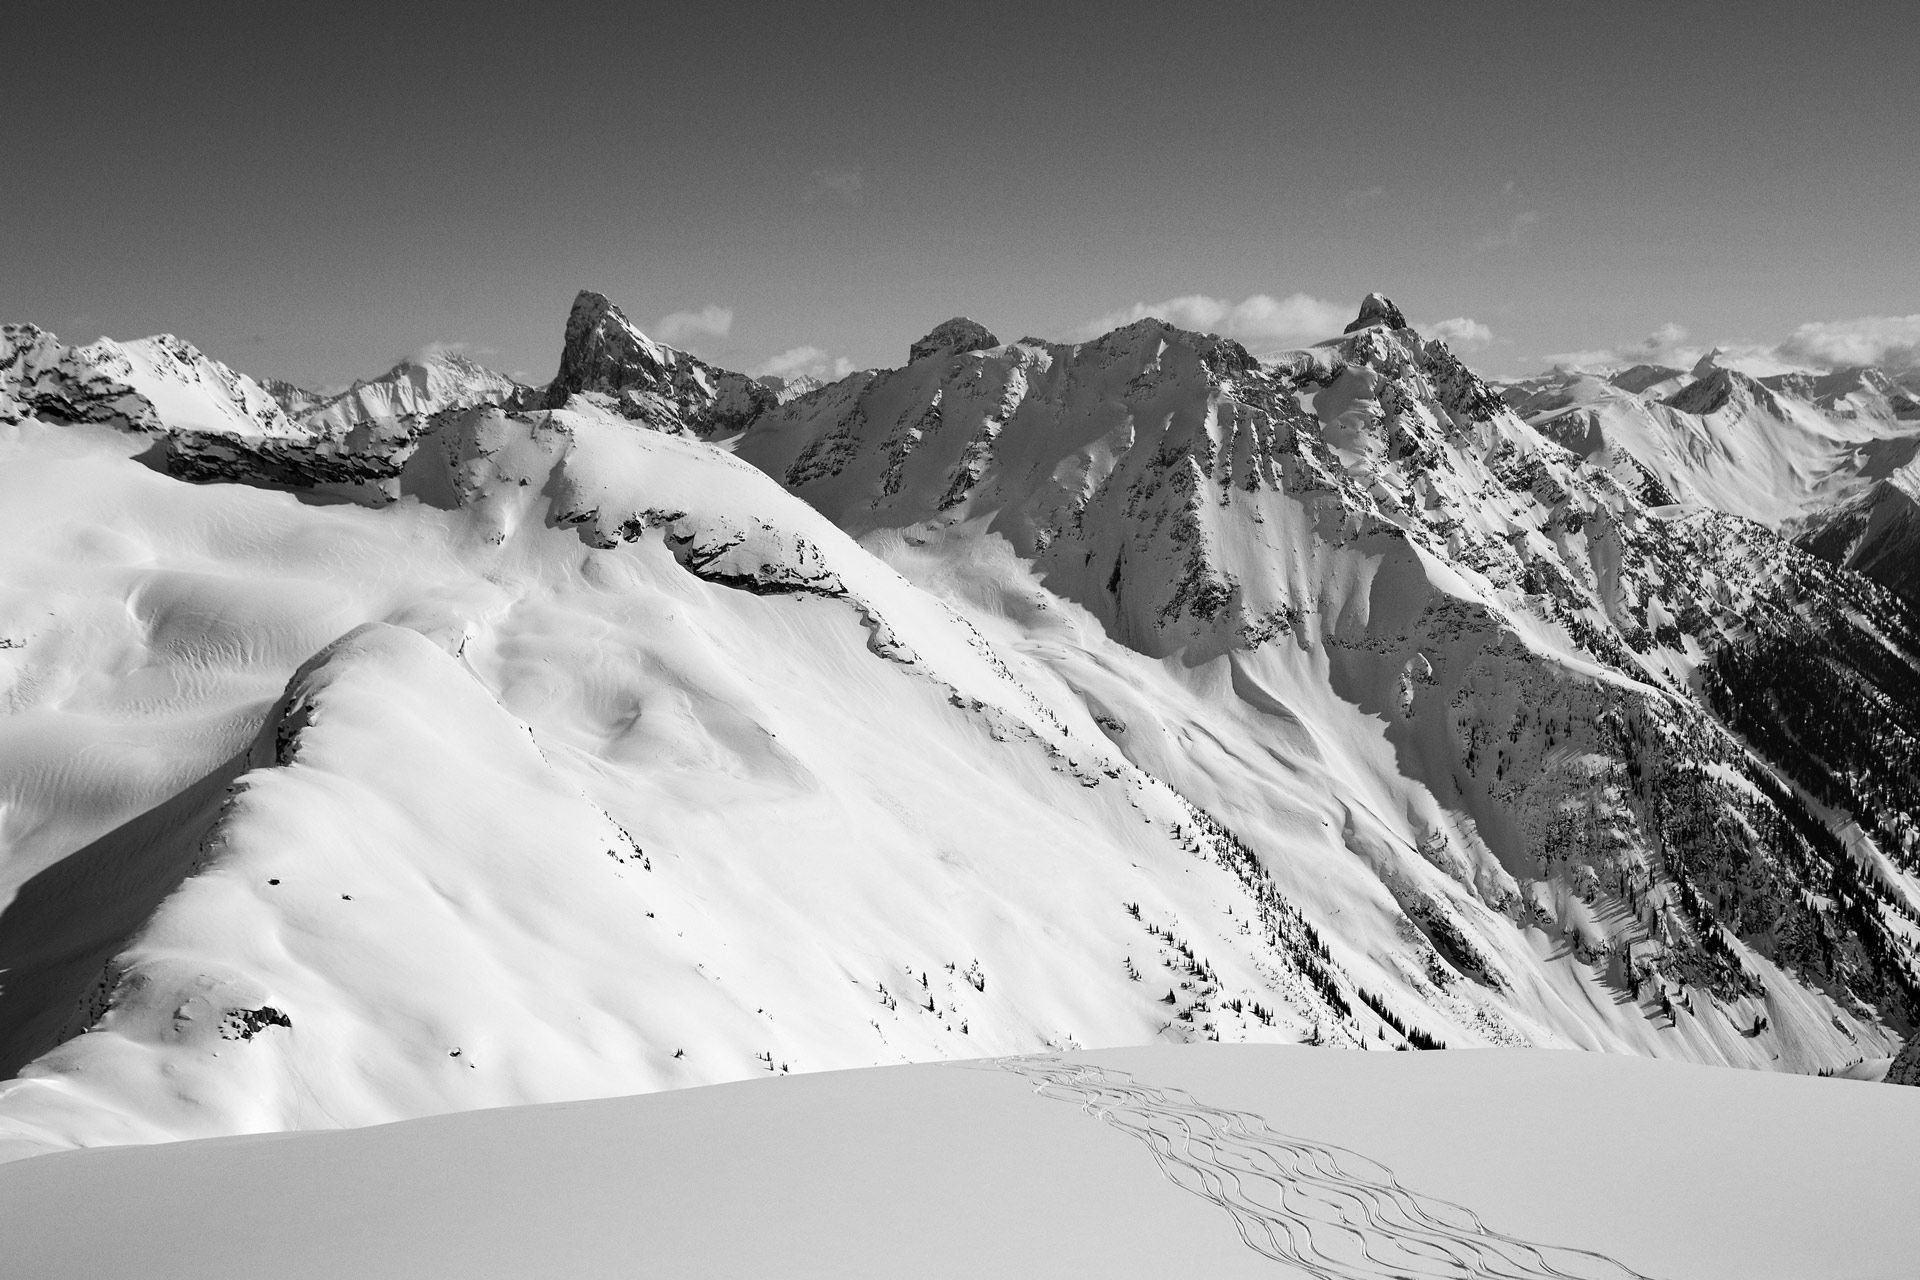 view of the Skelkies mountains in black and white by Jocelyn Michel